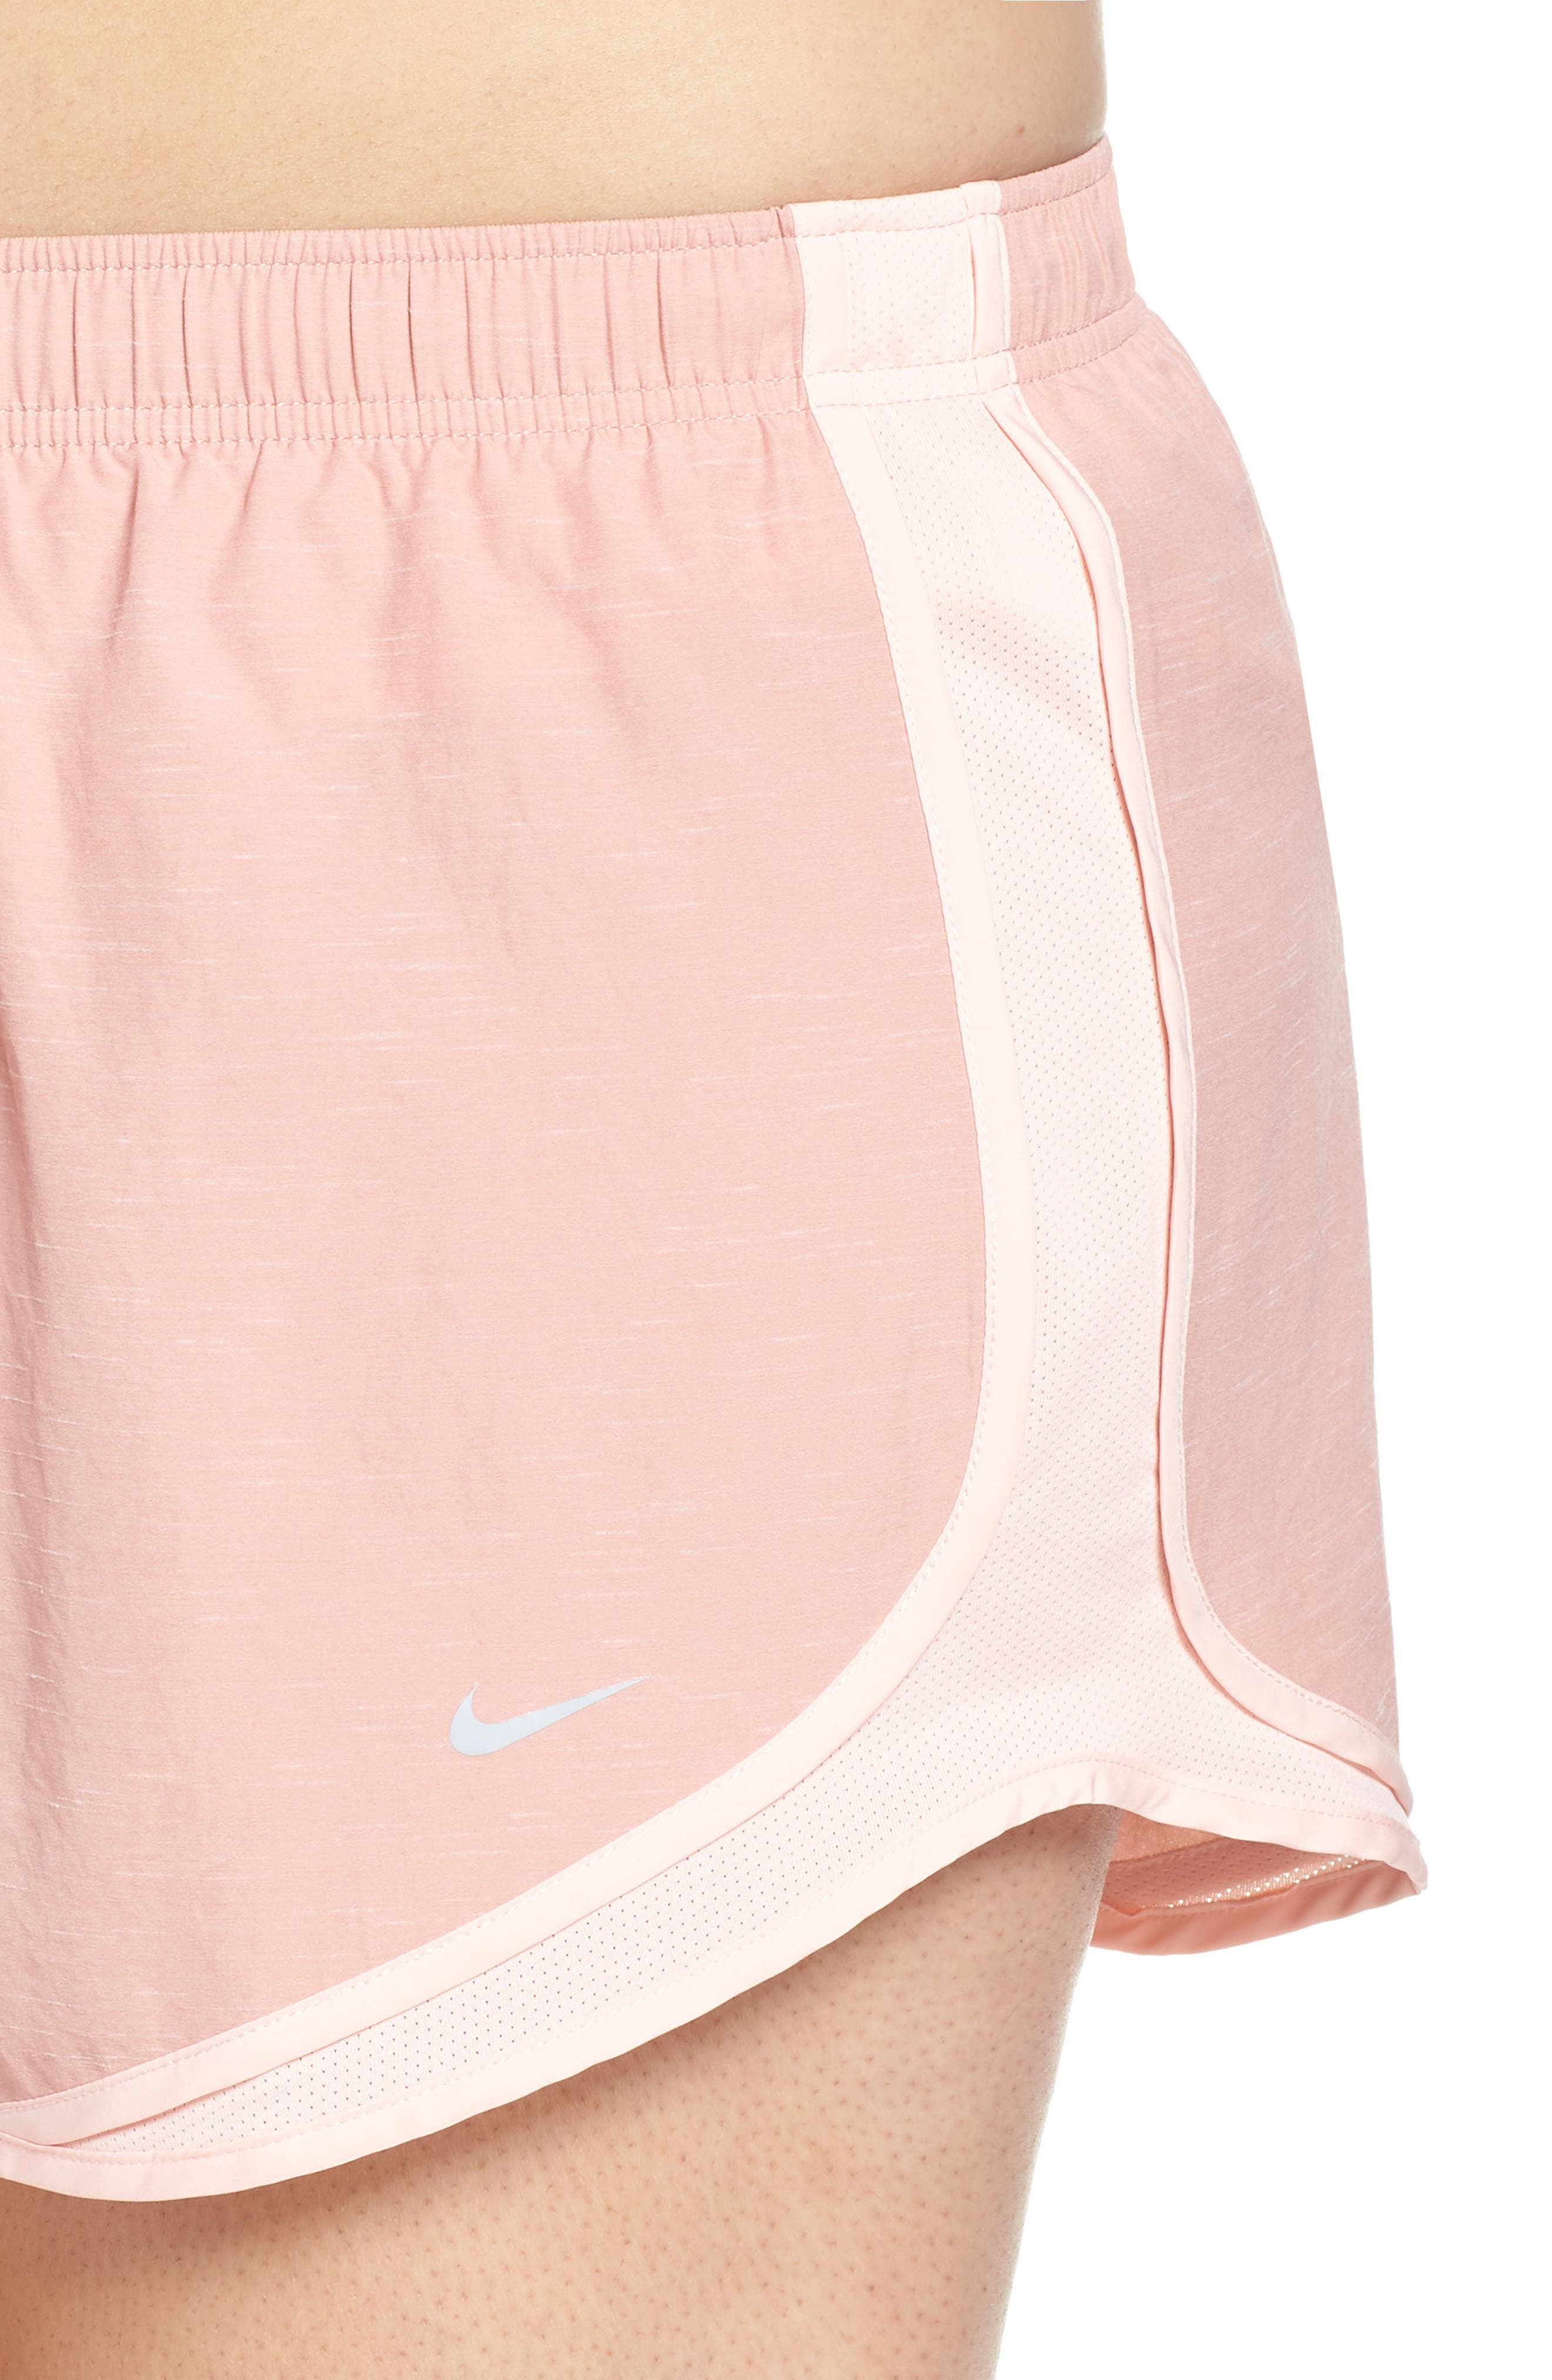 Dry Tempo High Rise Running Shorts,                             Alternate thumbnail 4, color,                             RUST PINK/ STORM PINK